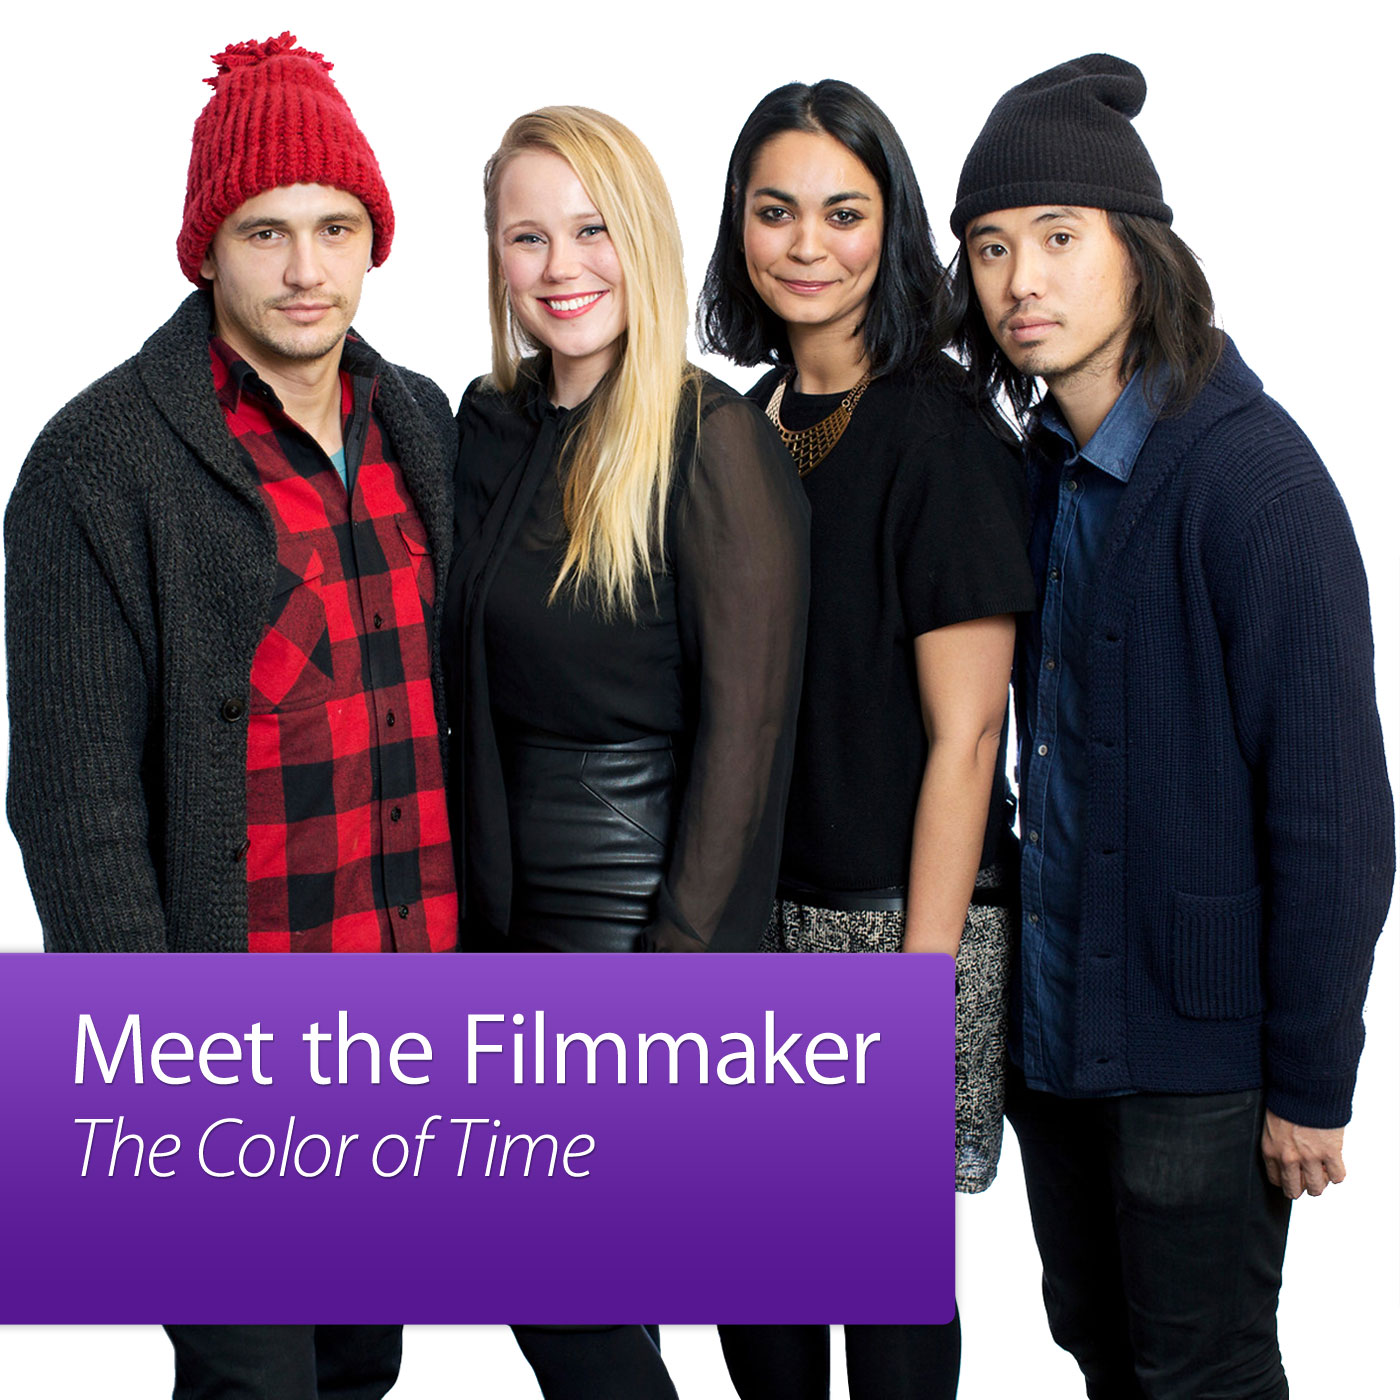 James Franco, Shruti Ganguly, Bruce Thierry Cheung, and Pamela Romanowsky: Meet the Filmmaker